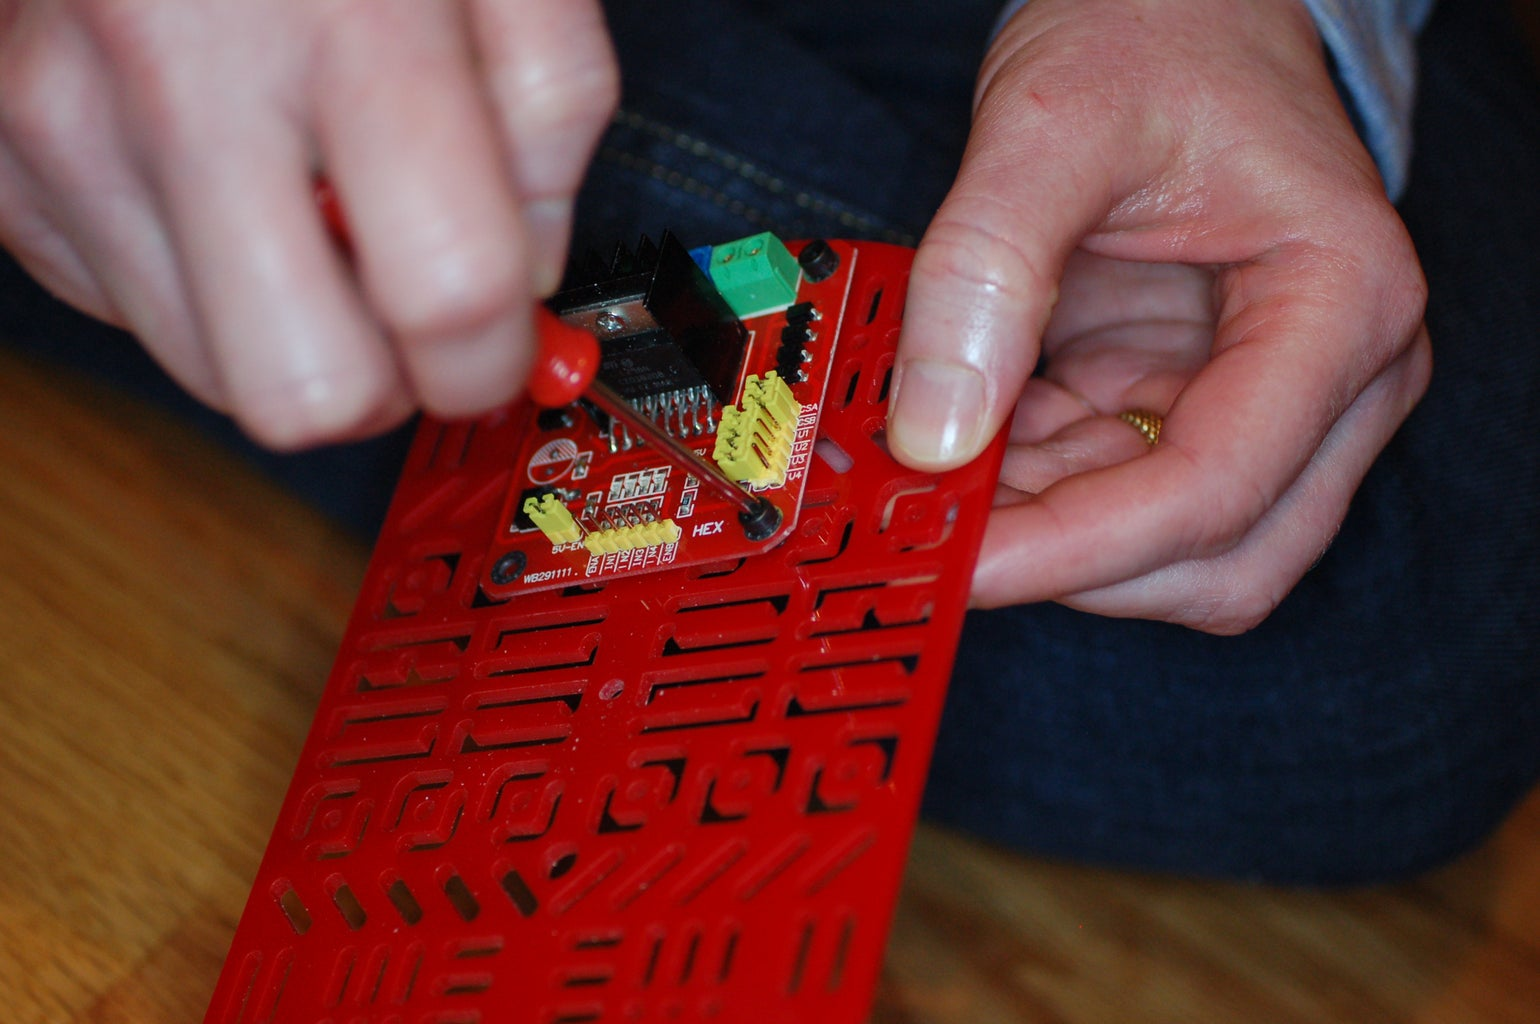 Attach the Microcontroller and Motor Driver to the Underside of the Top Body Deck